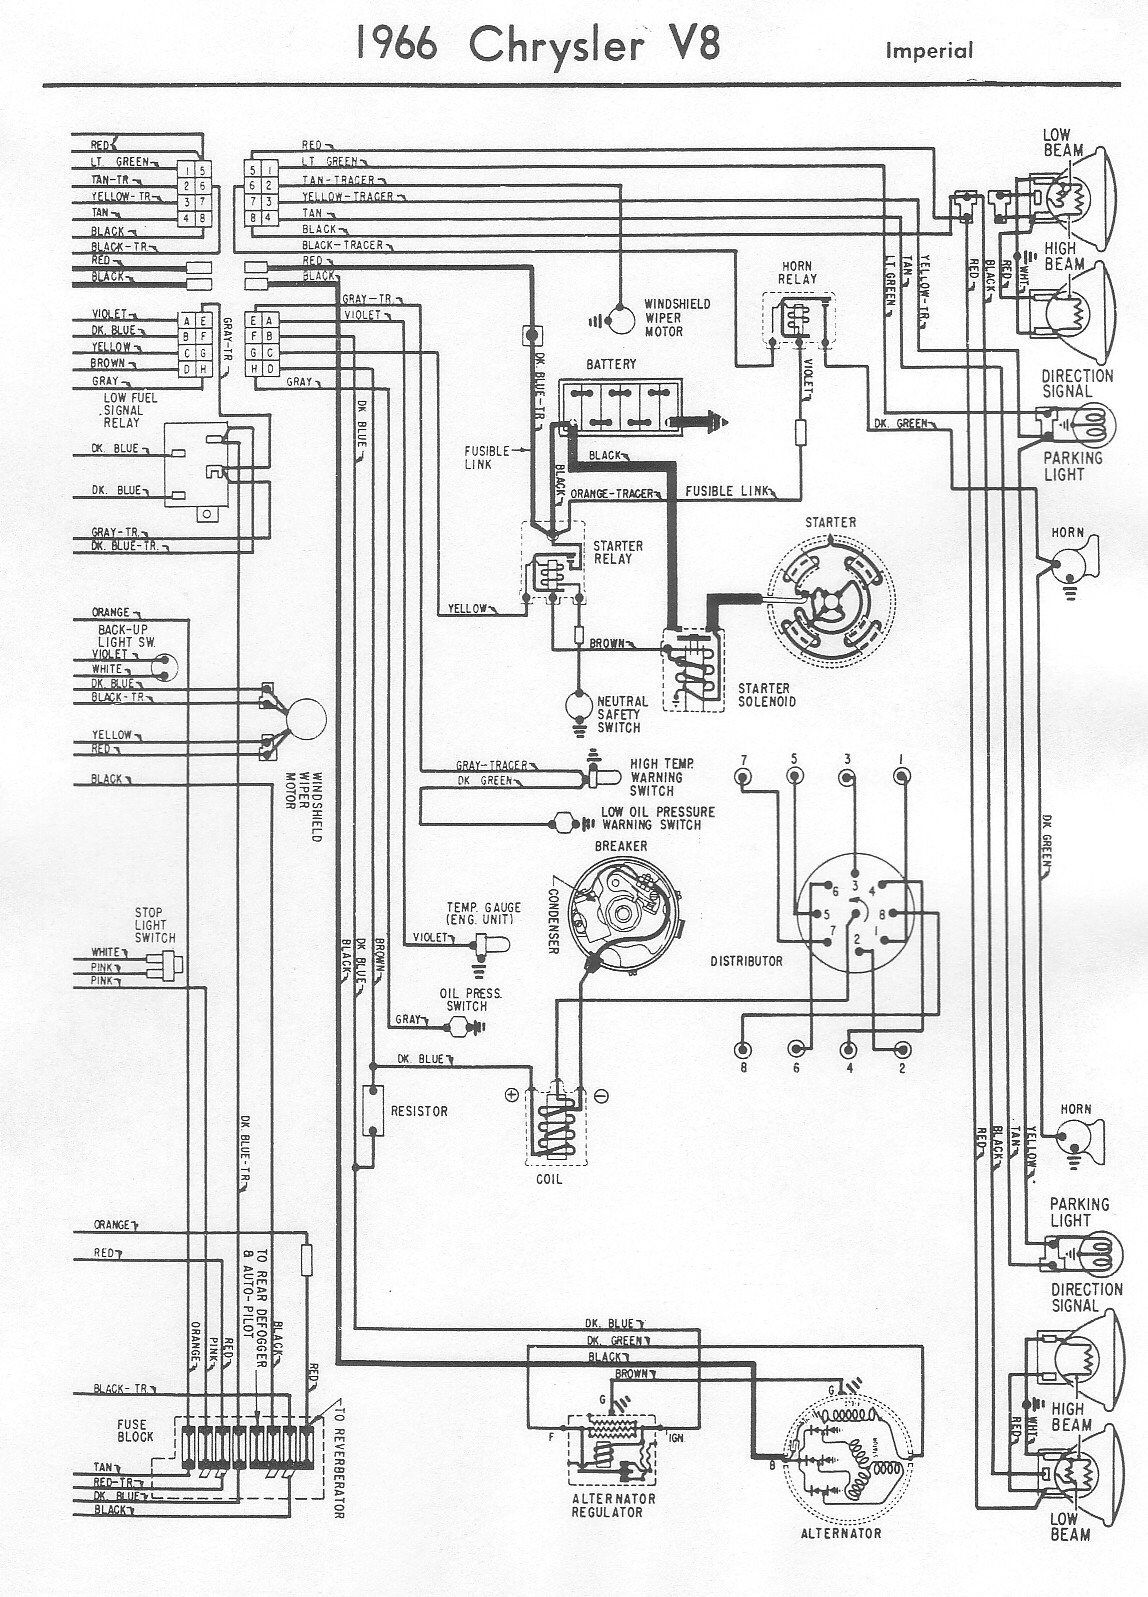 85 Camaro Dash Wiring Diagram Schematic Auto Electrical Wiring Diagram 1966 Chevrolet  Truck Wiring Diagram 1966 Porsche Wiring Diagram